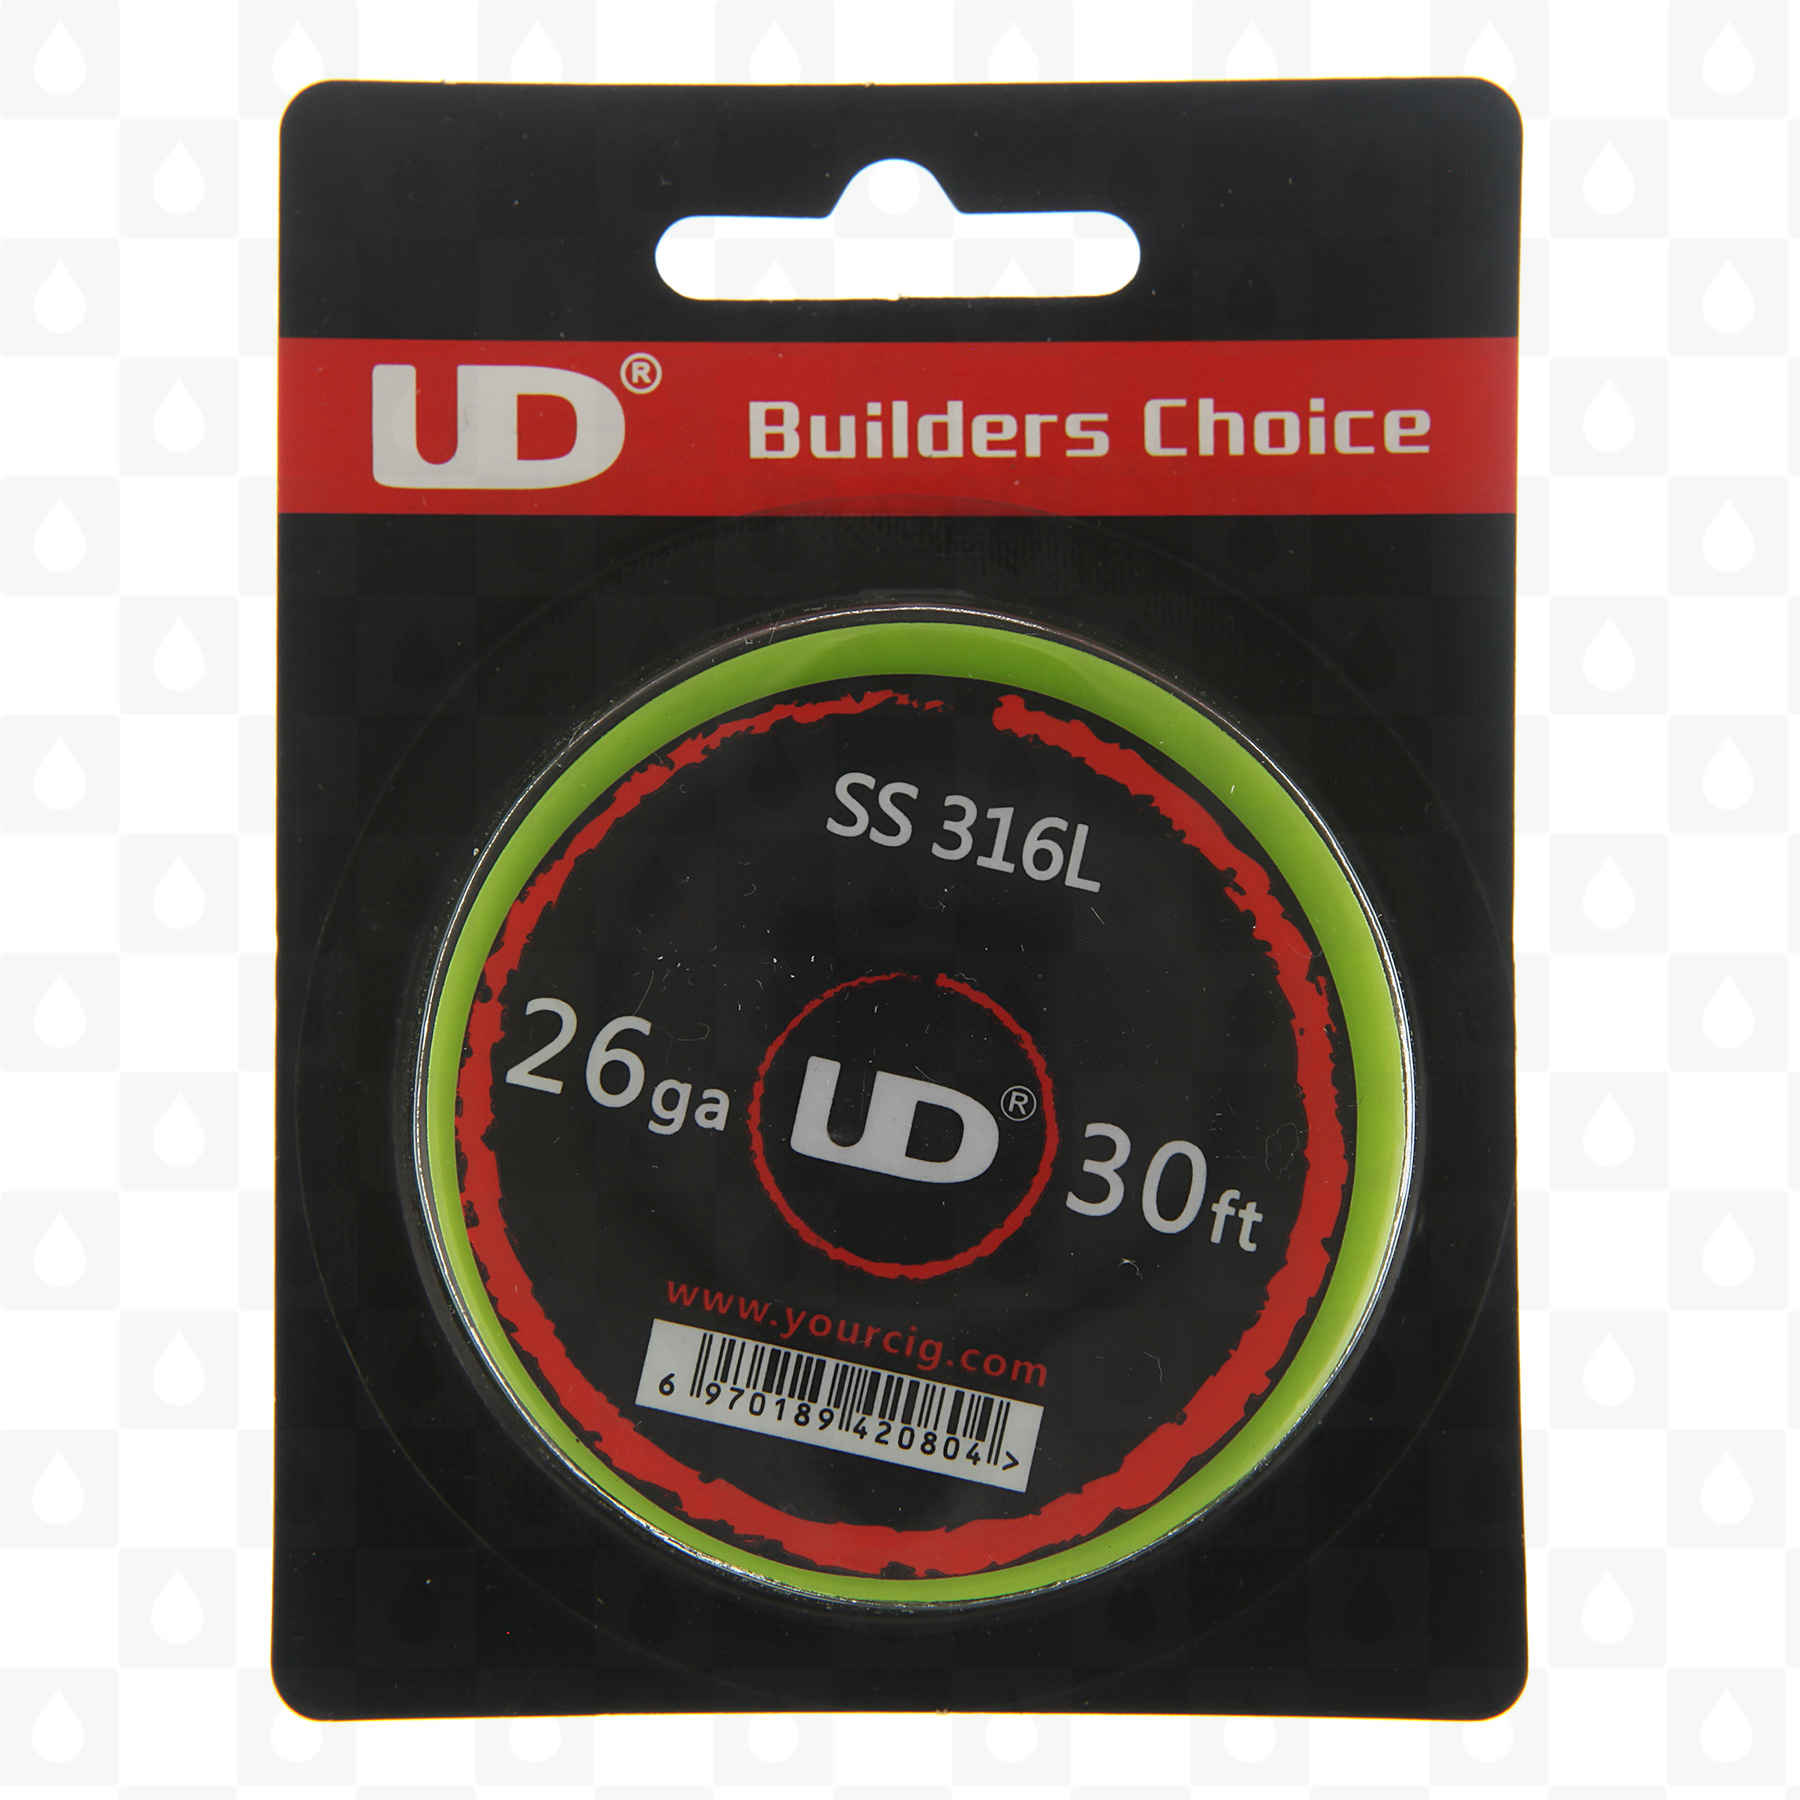 Ss316l heat resistance wire 10 meter spools gauge options by ud ss316l heat resistance wire 10 meter spools gauge options by ud uk vape shop redjuice keyboard keysfo Choice Image